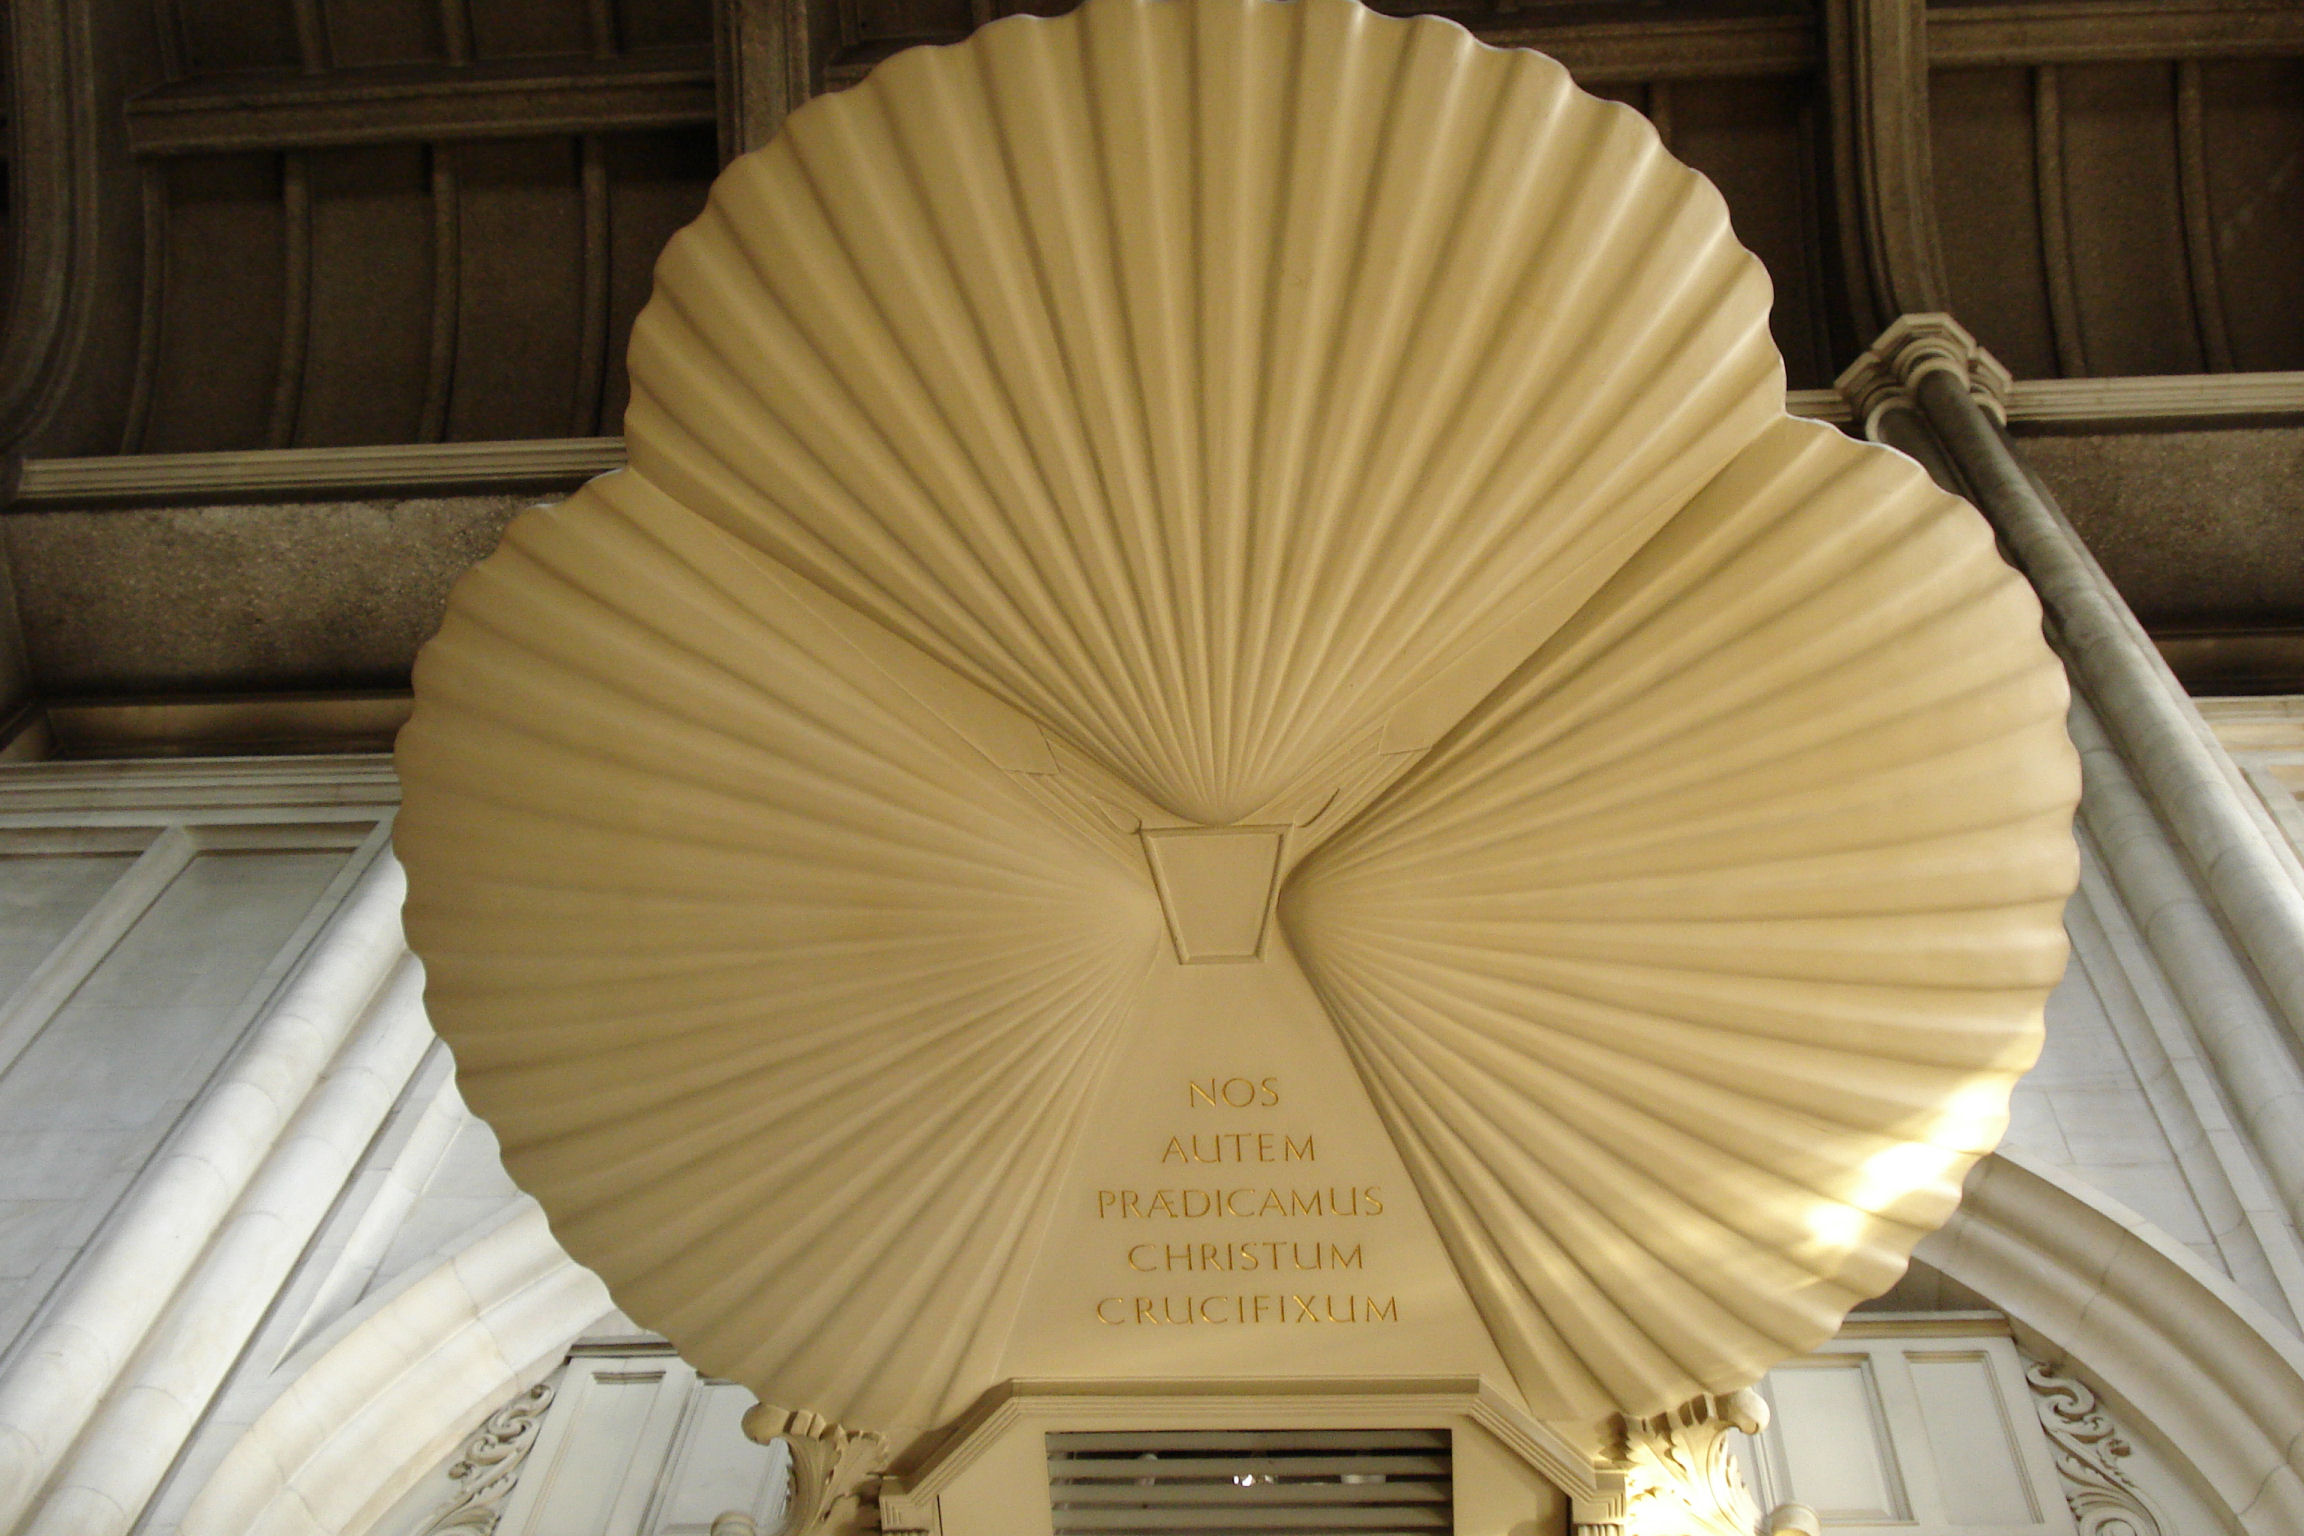 Shell soundboard above pulpit